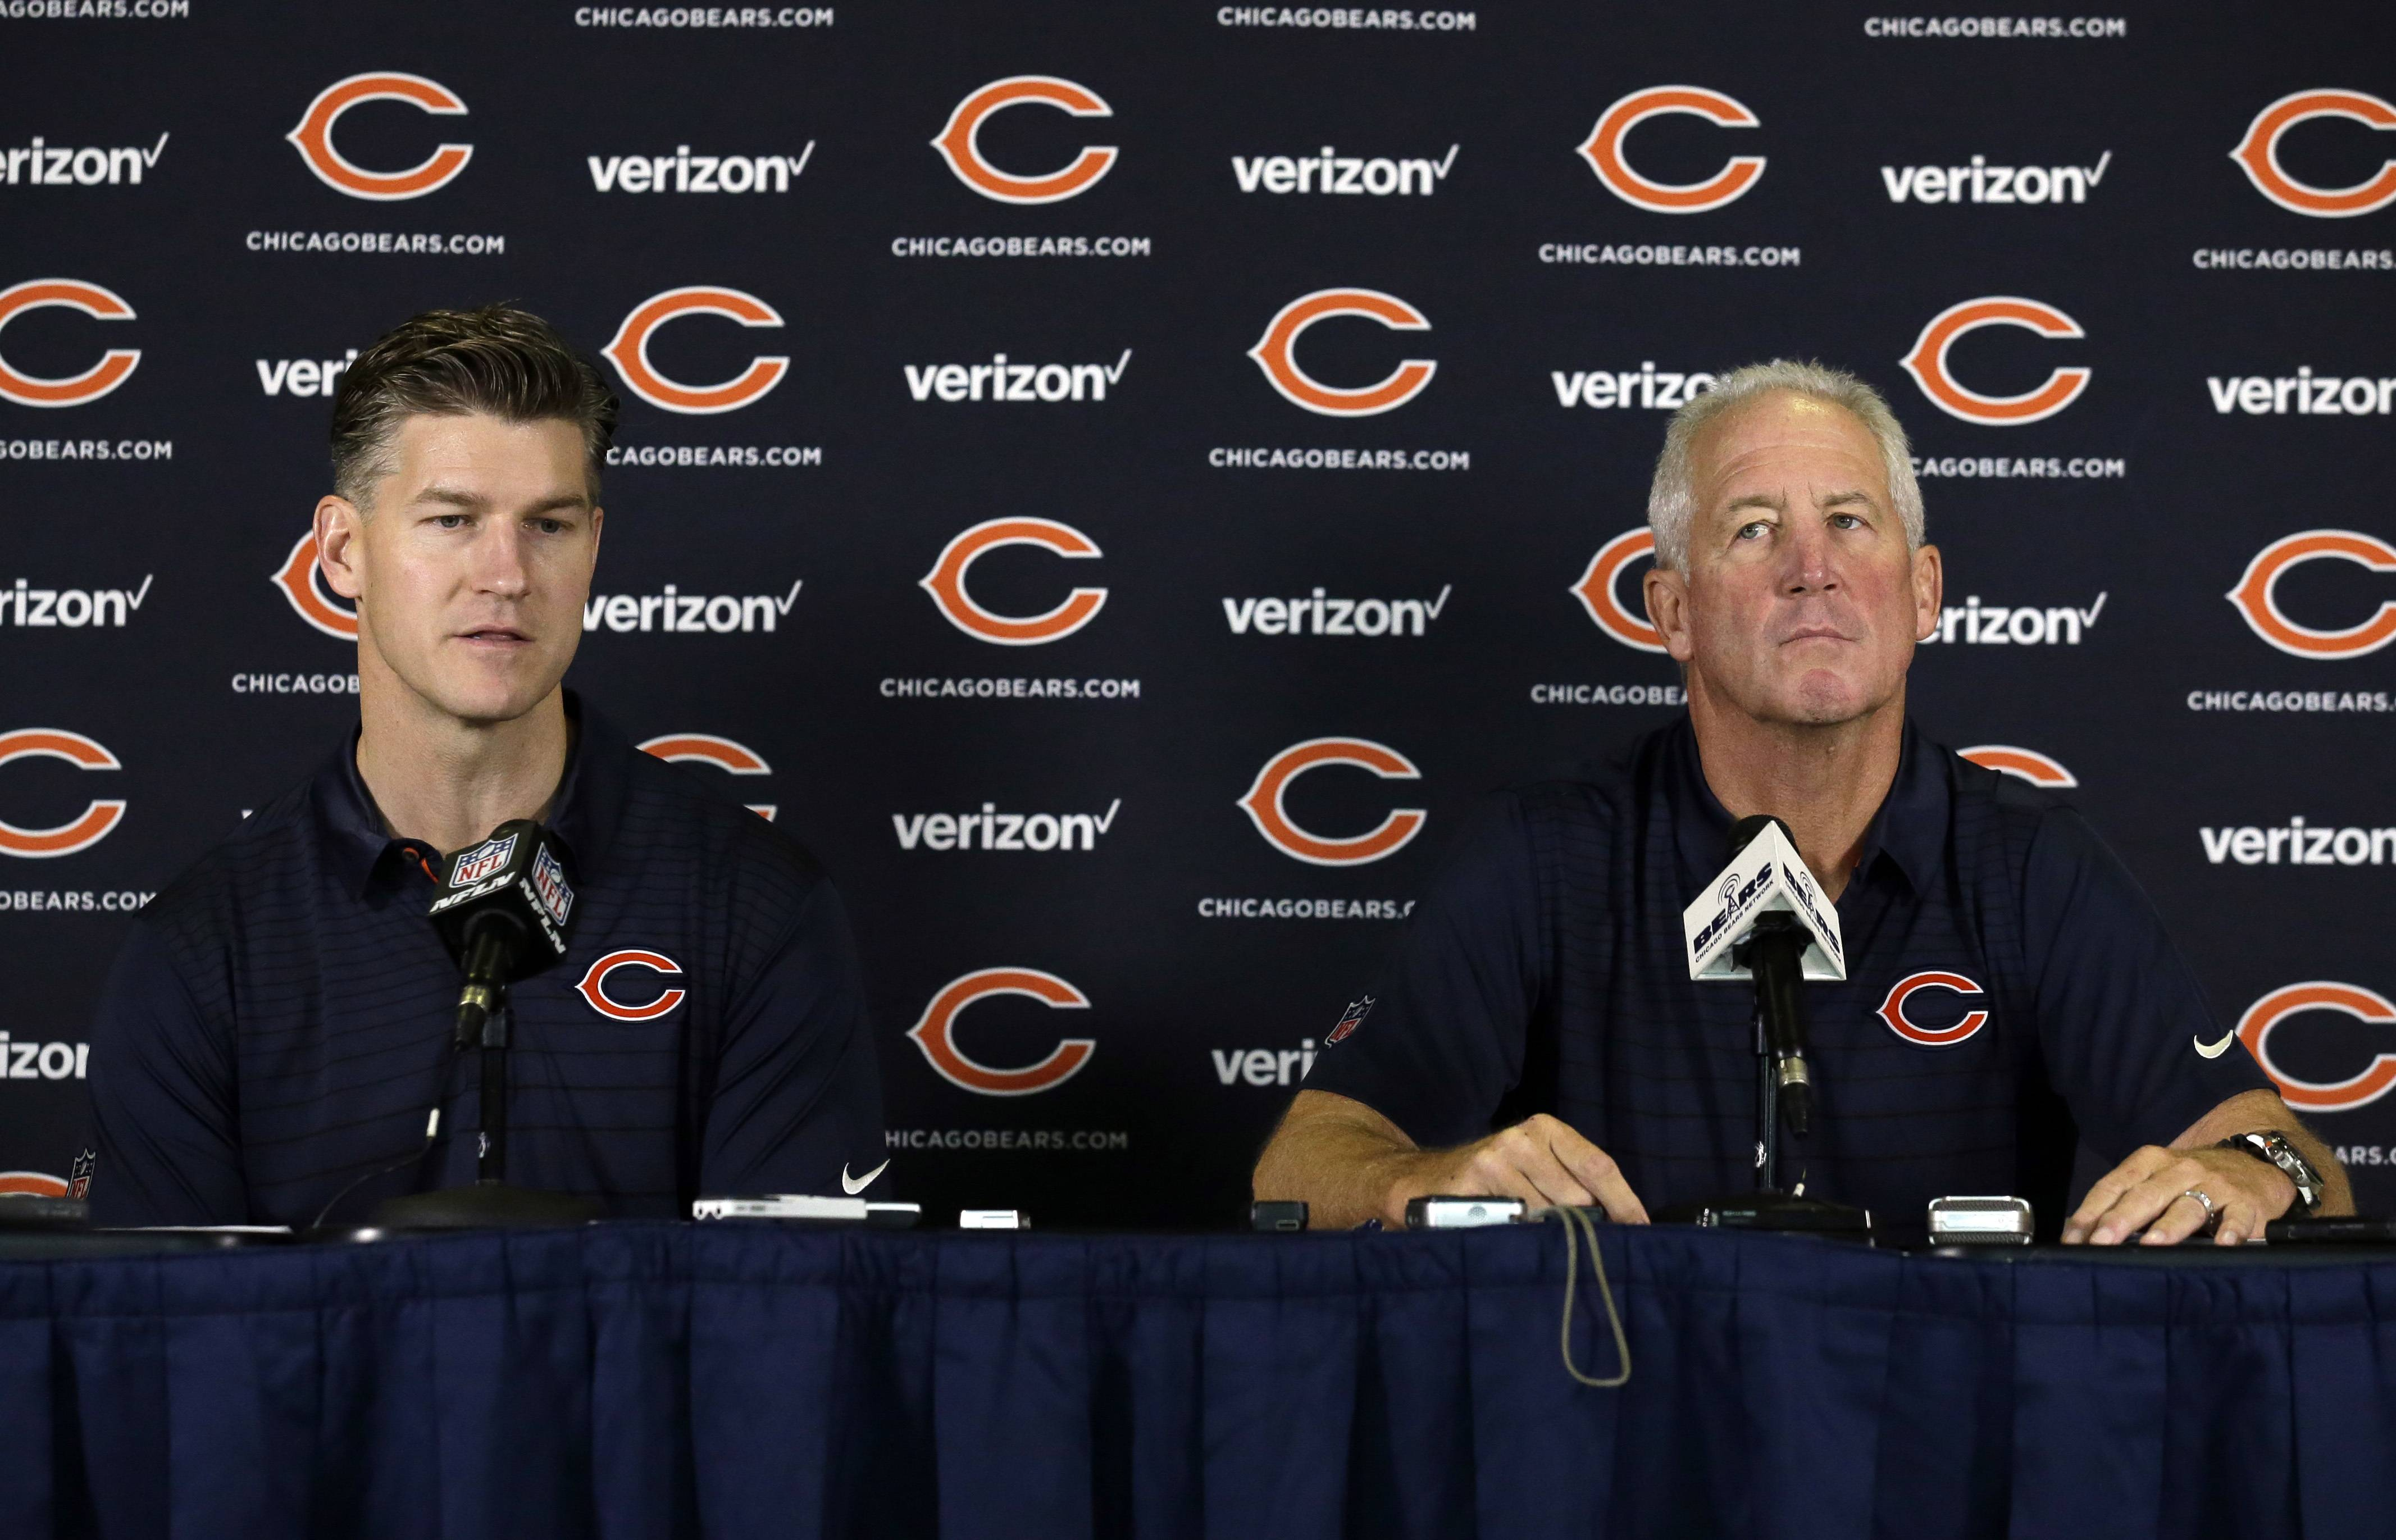 Chicago Bears general manager Ryan Pace, left, and head coach John Fox listen to questions during an NFL football training camp in Bourbonnais, Ill., Wednesday, July 26, 2017. (AP Photo/Nam Y. Huh)